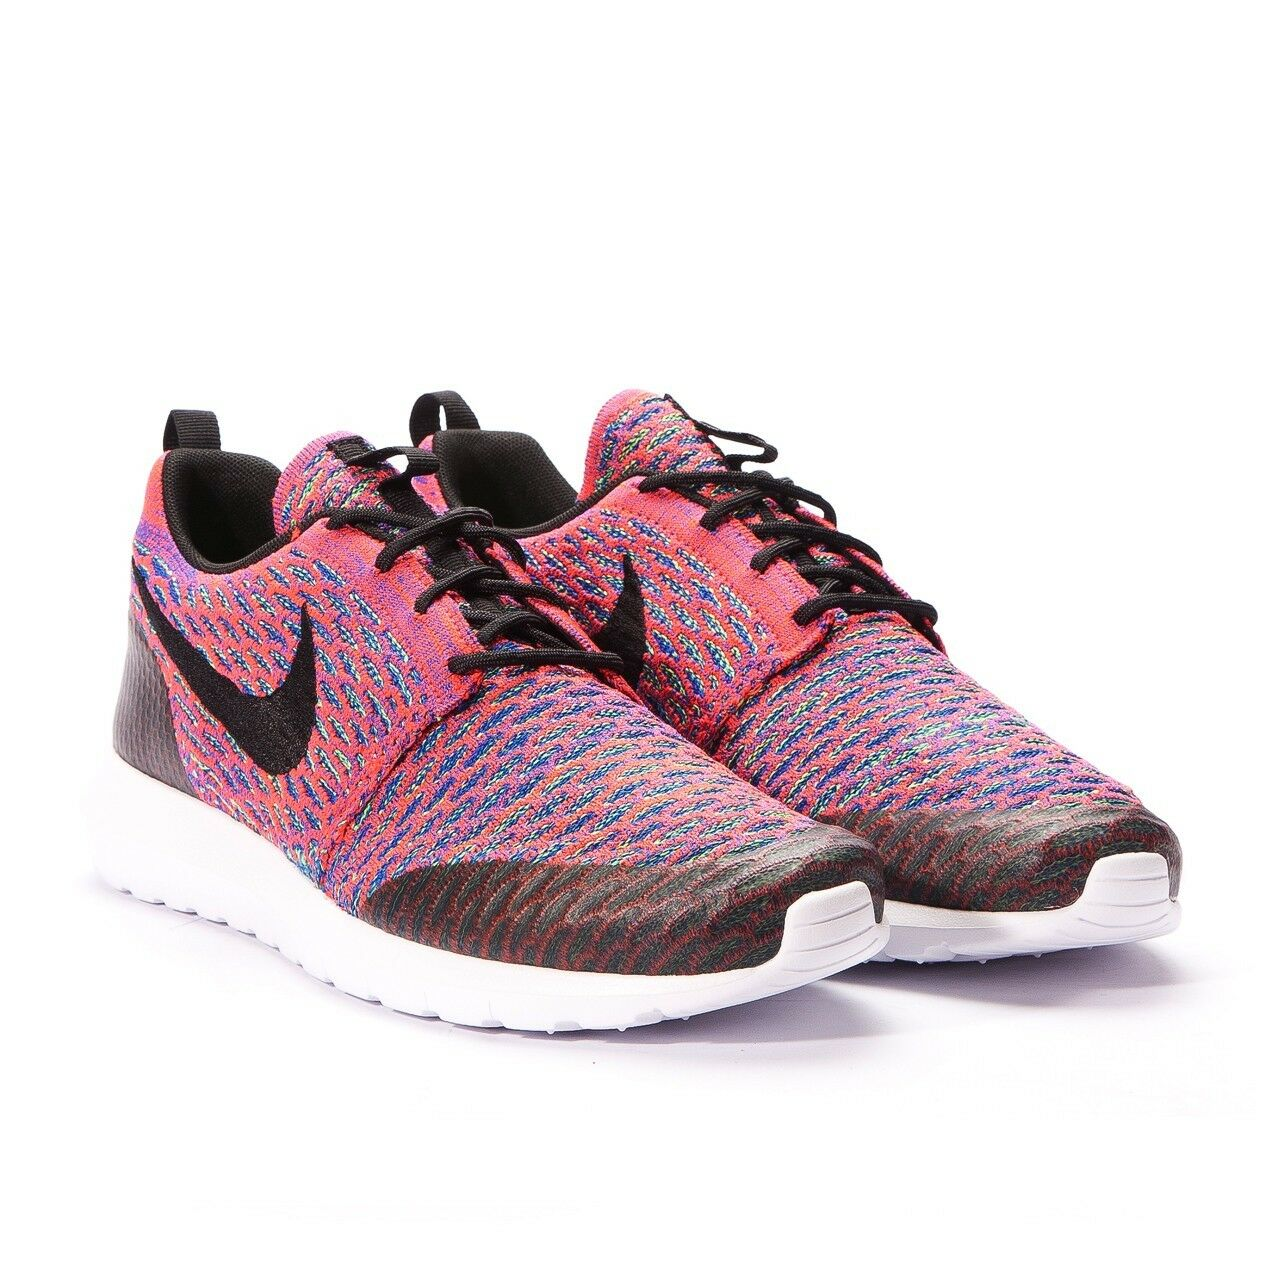 New Nike Roshe NM Flyknit SE Sneaker Size 10.5 Pink Green Black Blue White